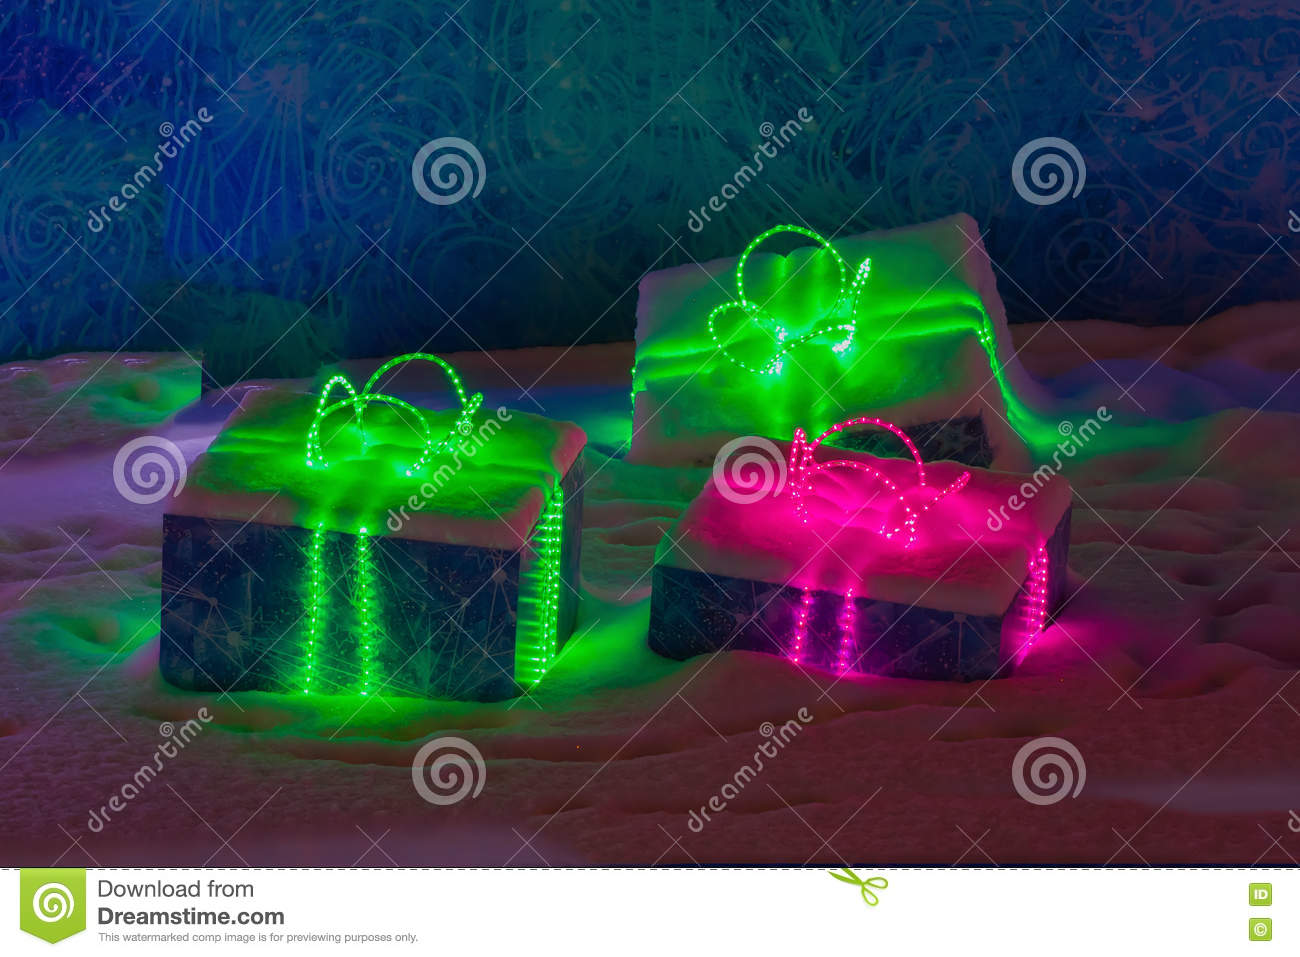 Shiny Contours Of A Present Neon Gift Box With Glowing Sparkles On